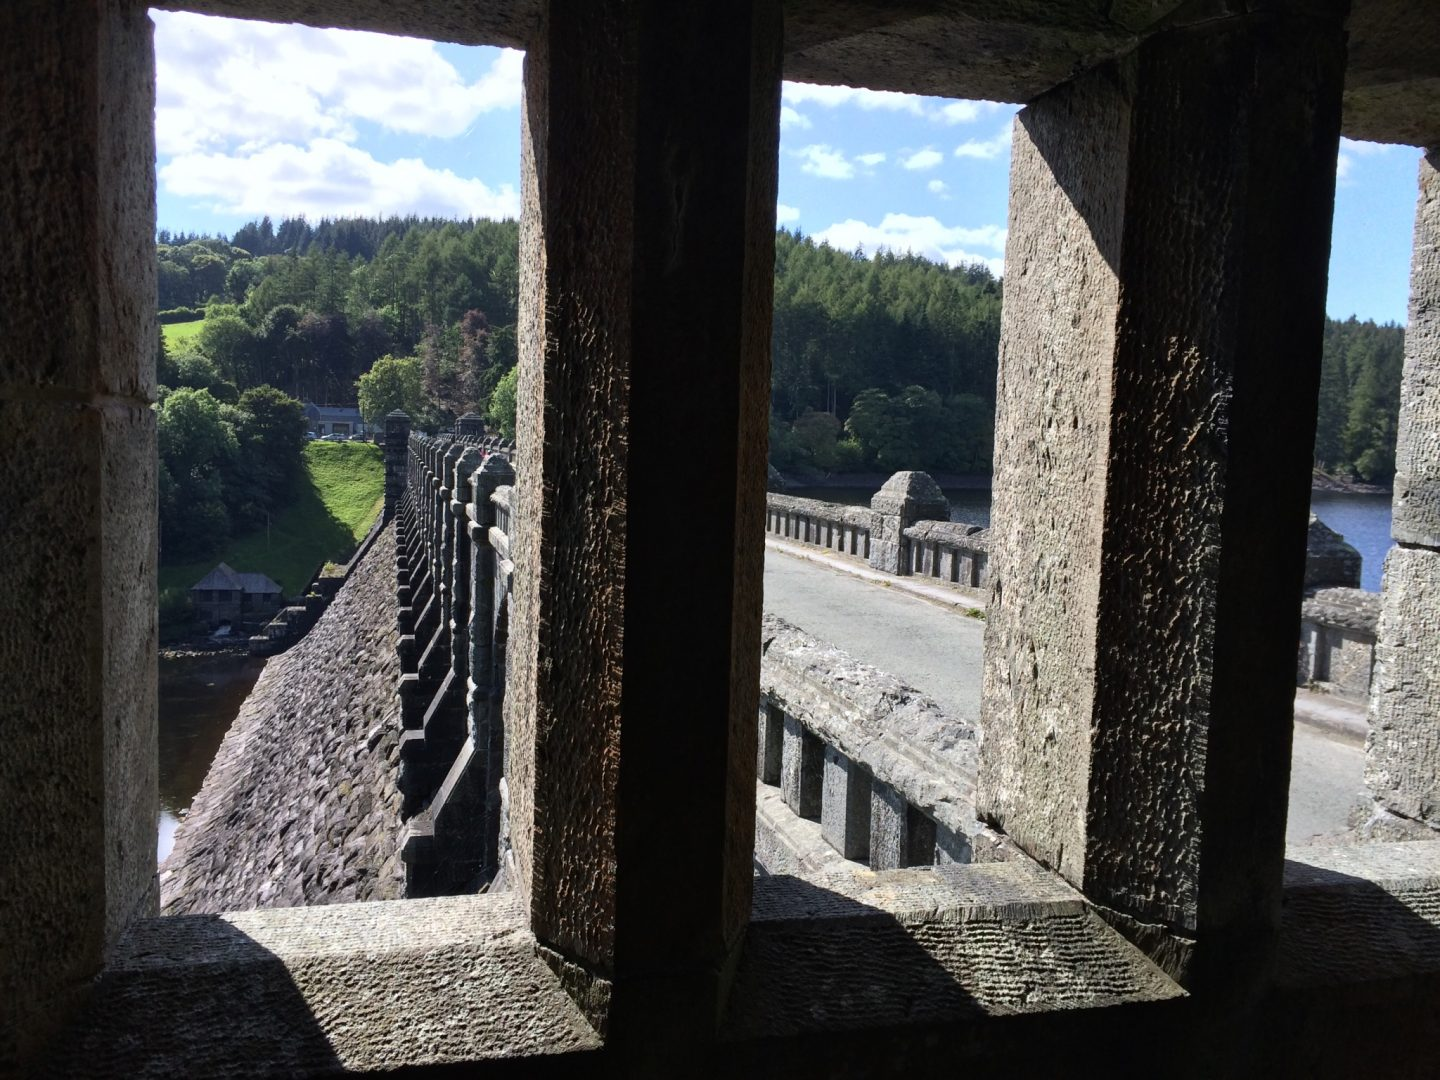 Bridge at Lake Vyrnwy, Wales